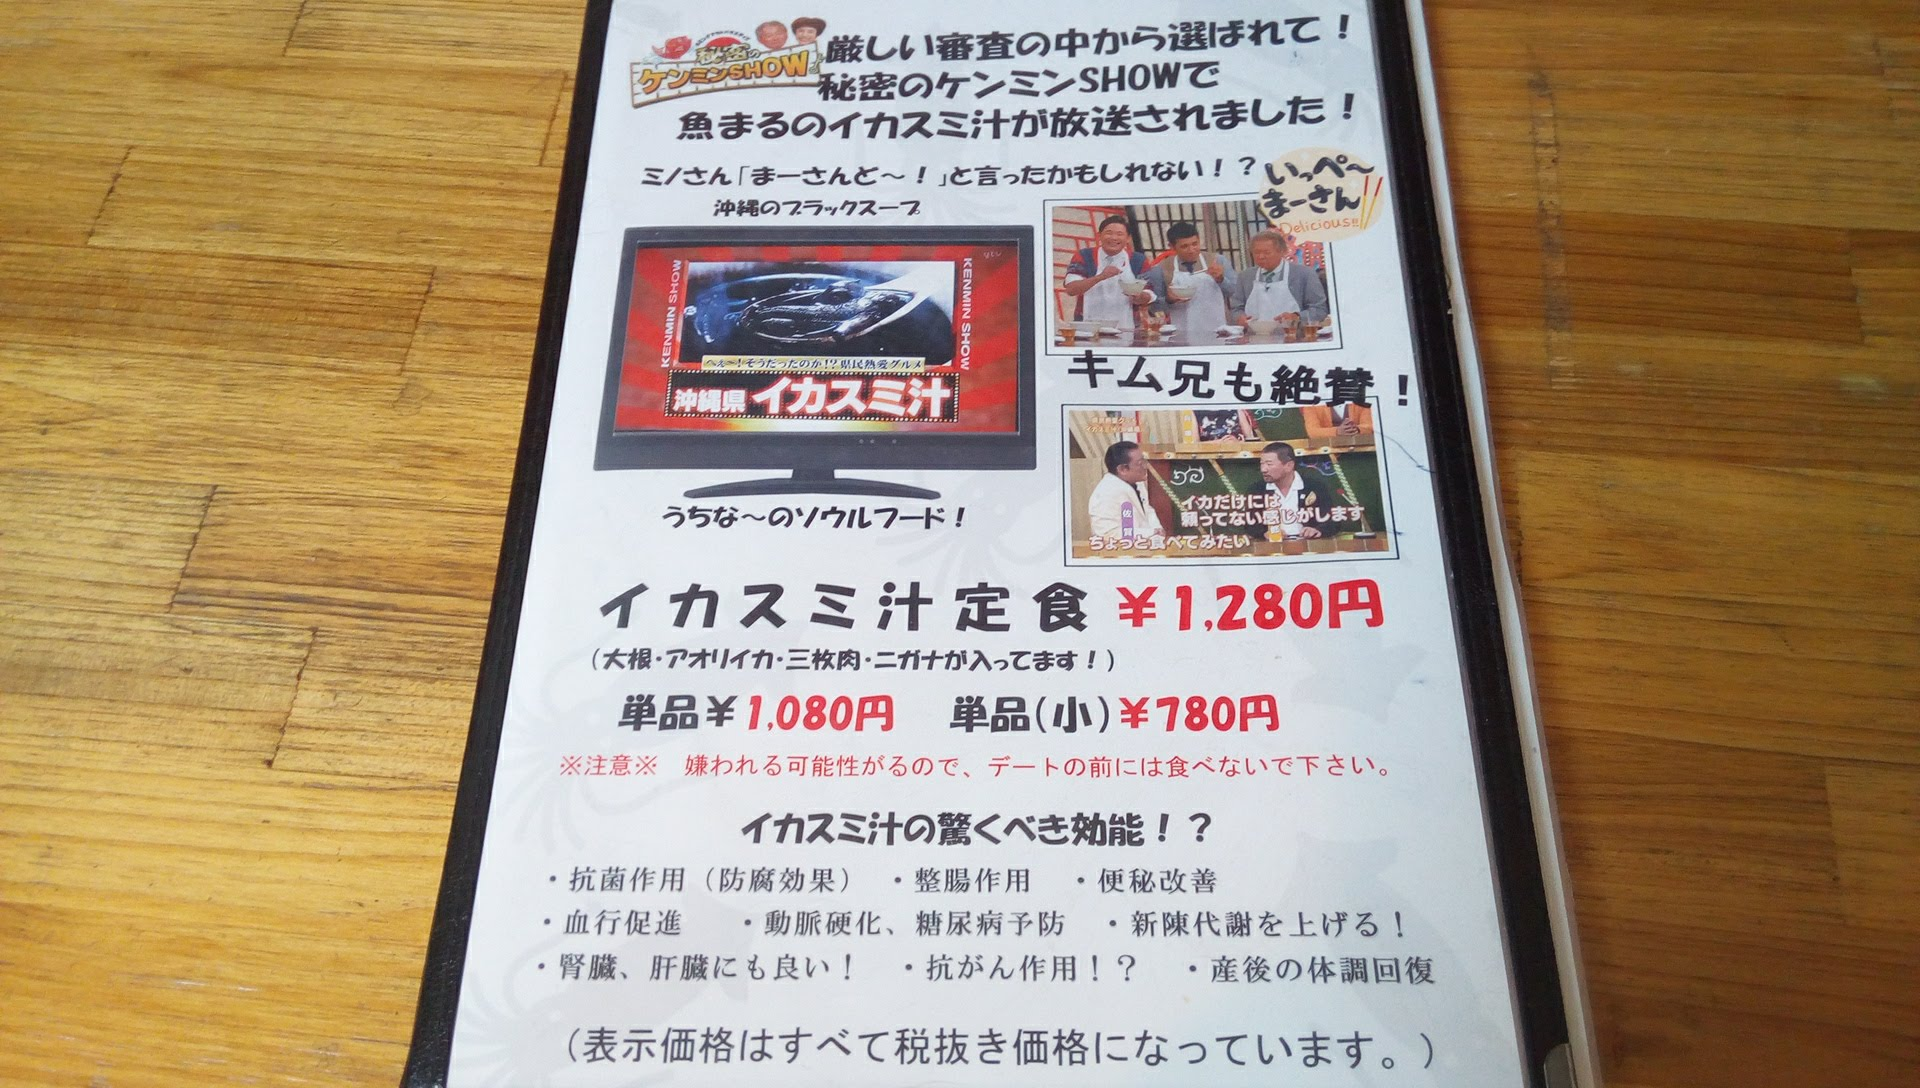 Ikasumi soup of Uomaru was picked up by popular TV program